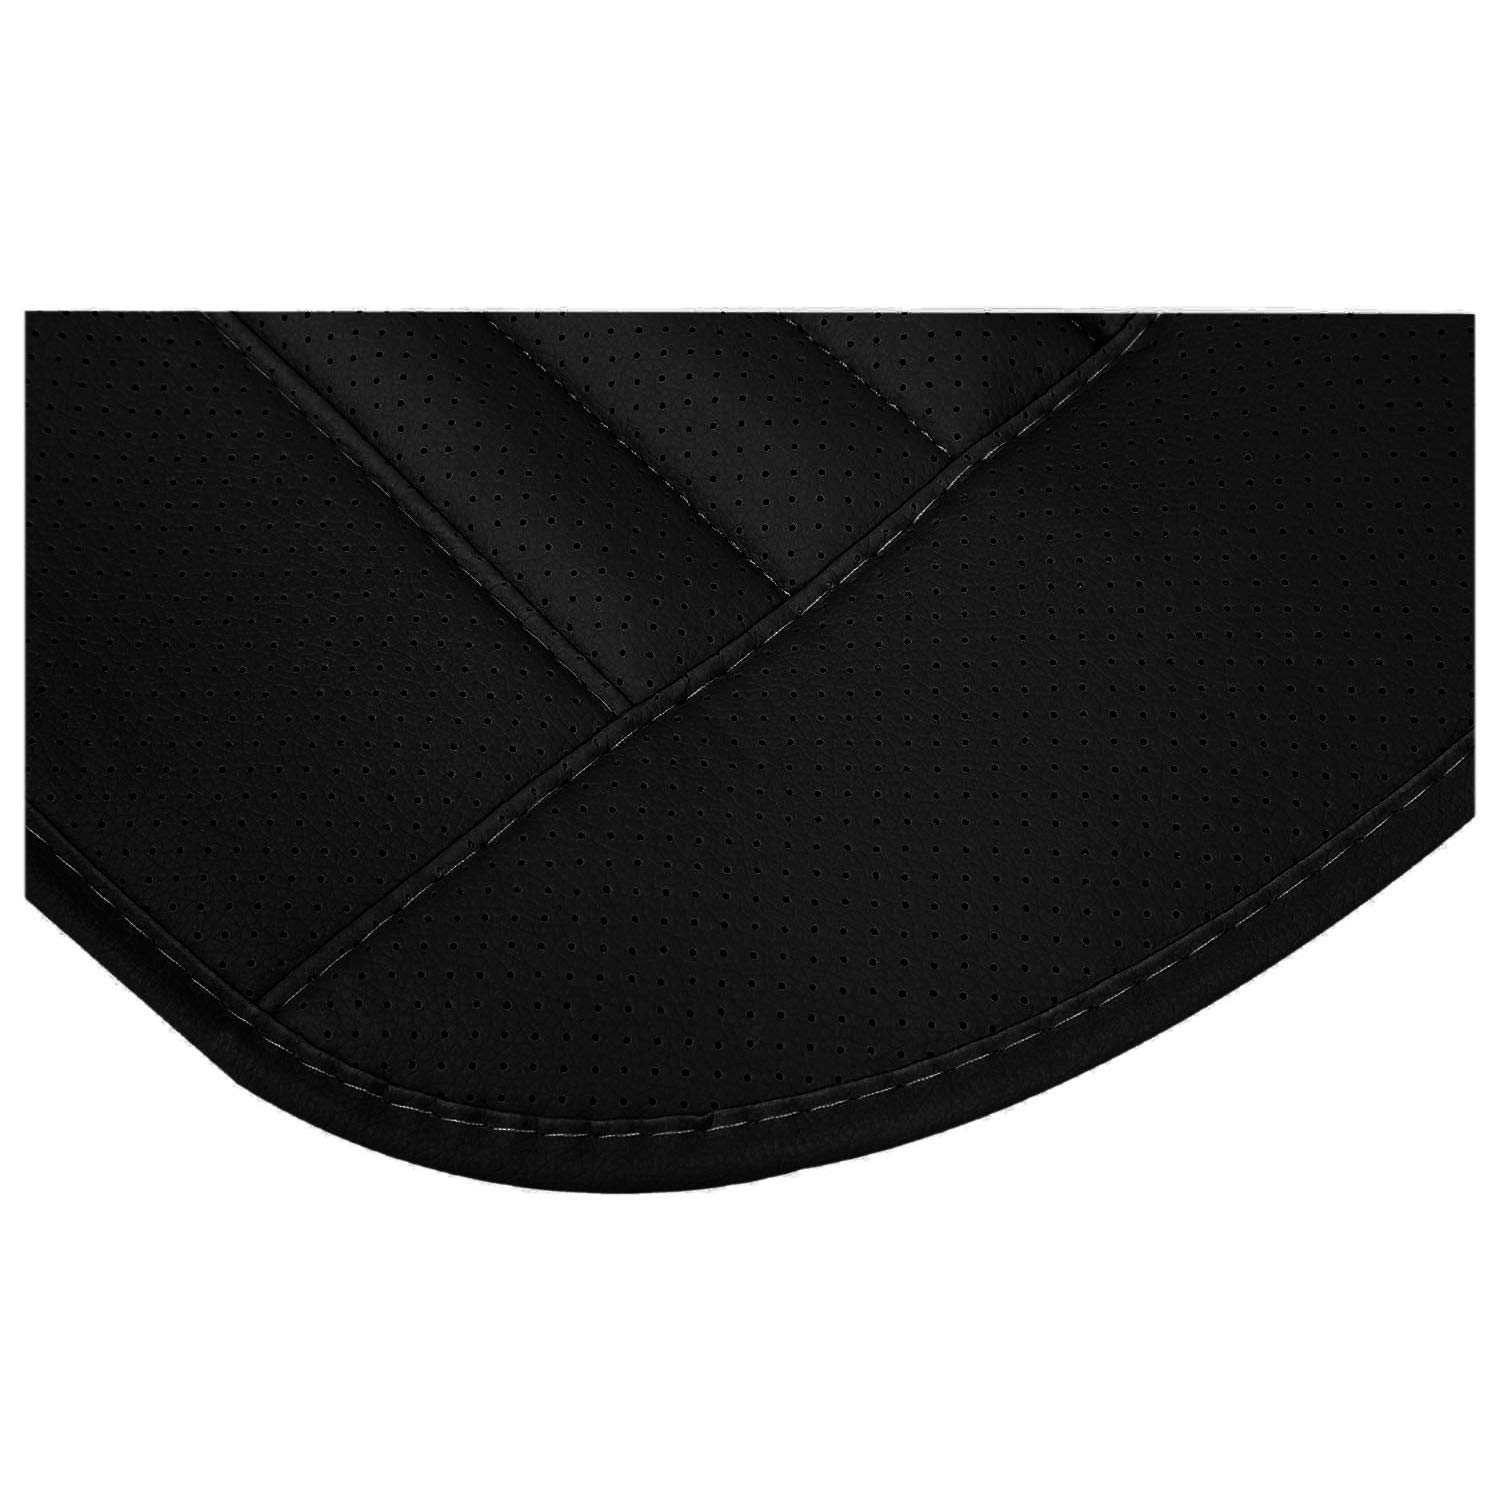 R Black TOOGOO Car Bamboo Charcoal Leather Seat Cushion Breathable Therapy Chair Cover Pad